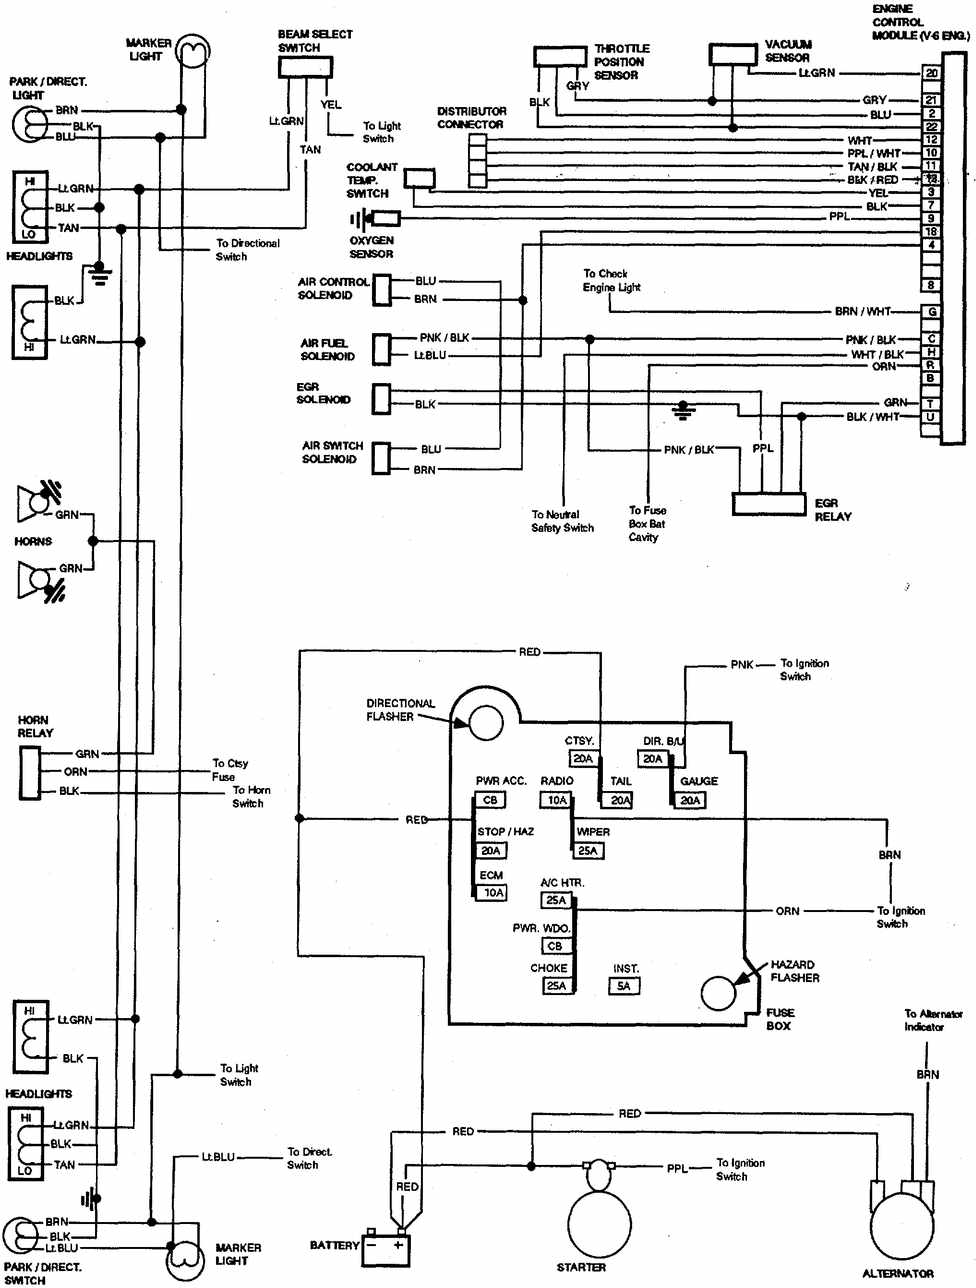 1985 Corvette Ecm Wiring Harness Search For Diagrams 1964 Diagram Chevrolet V8 Trucks 1981 1987 Electrical 1984